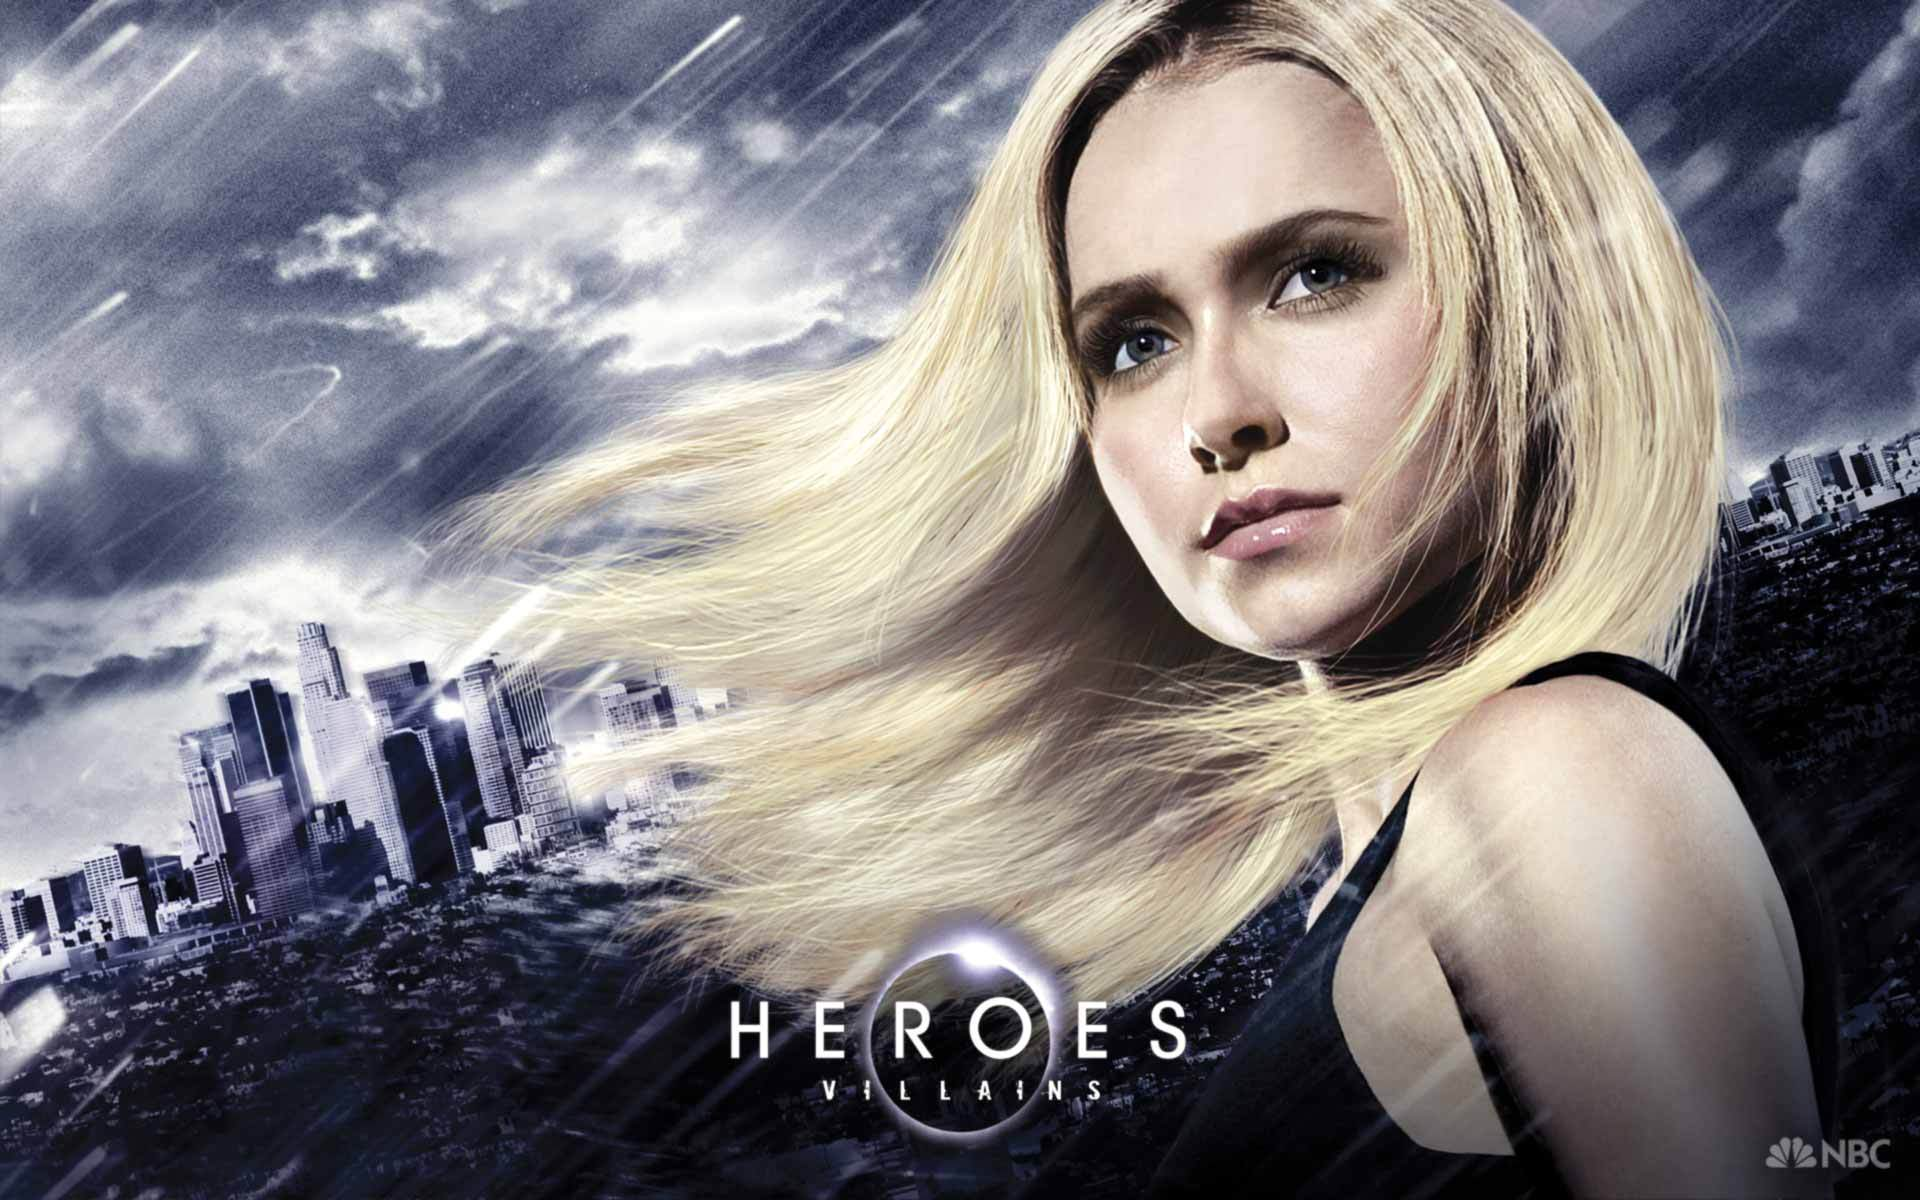 Claire Bennet - Hereos